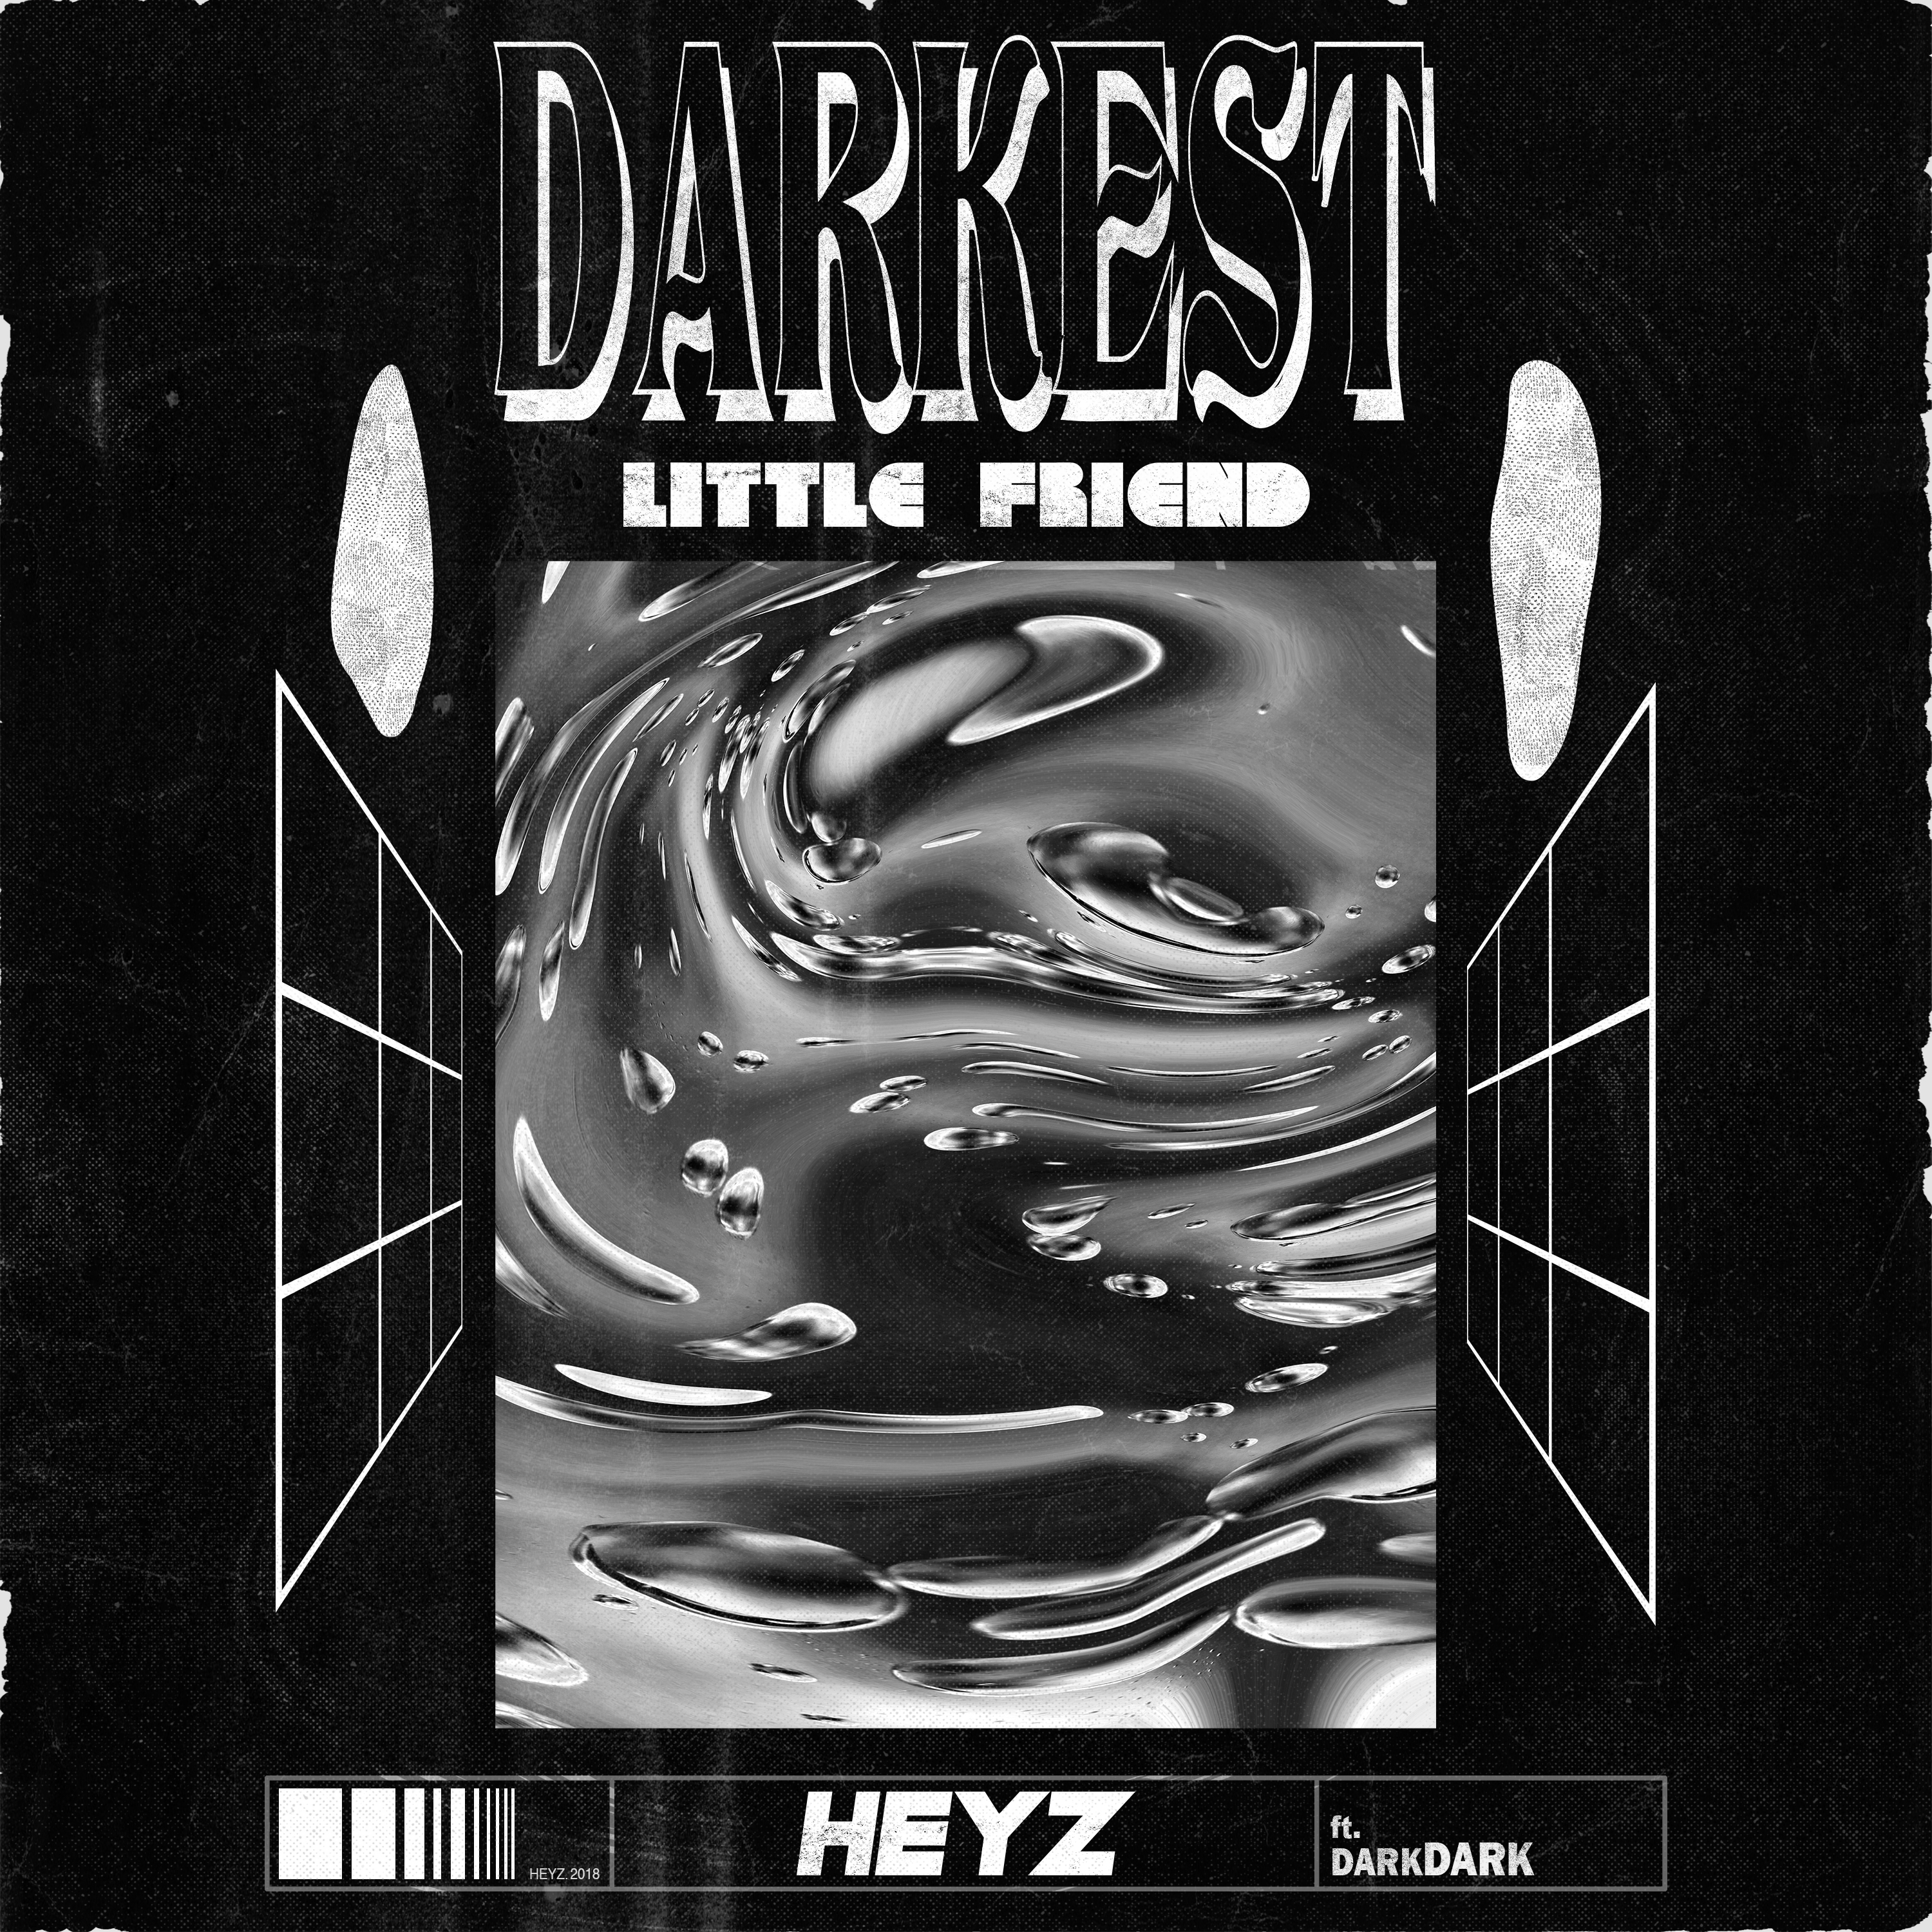 HEYZ - Darkest Little Friend